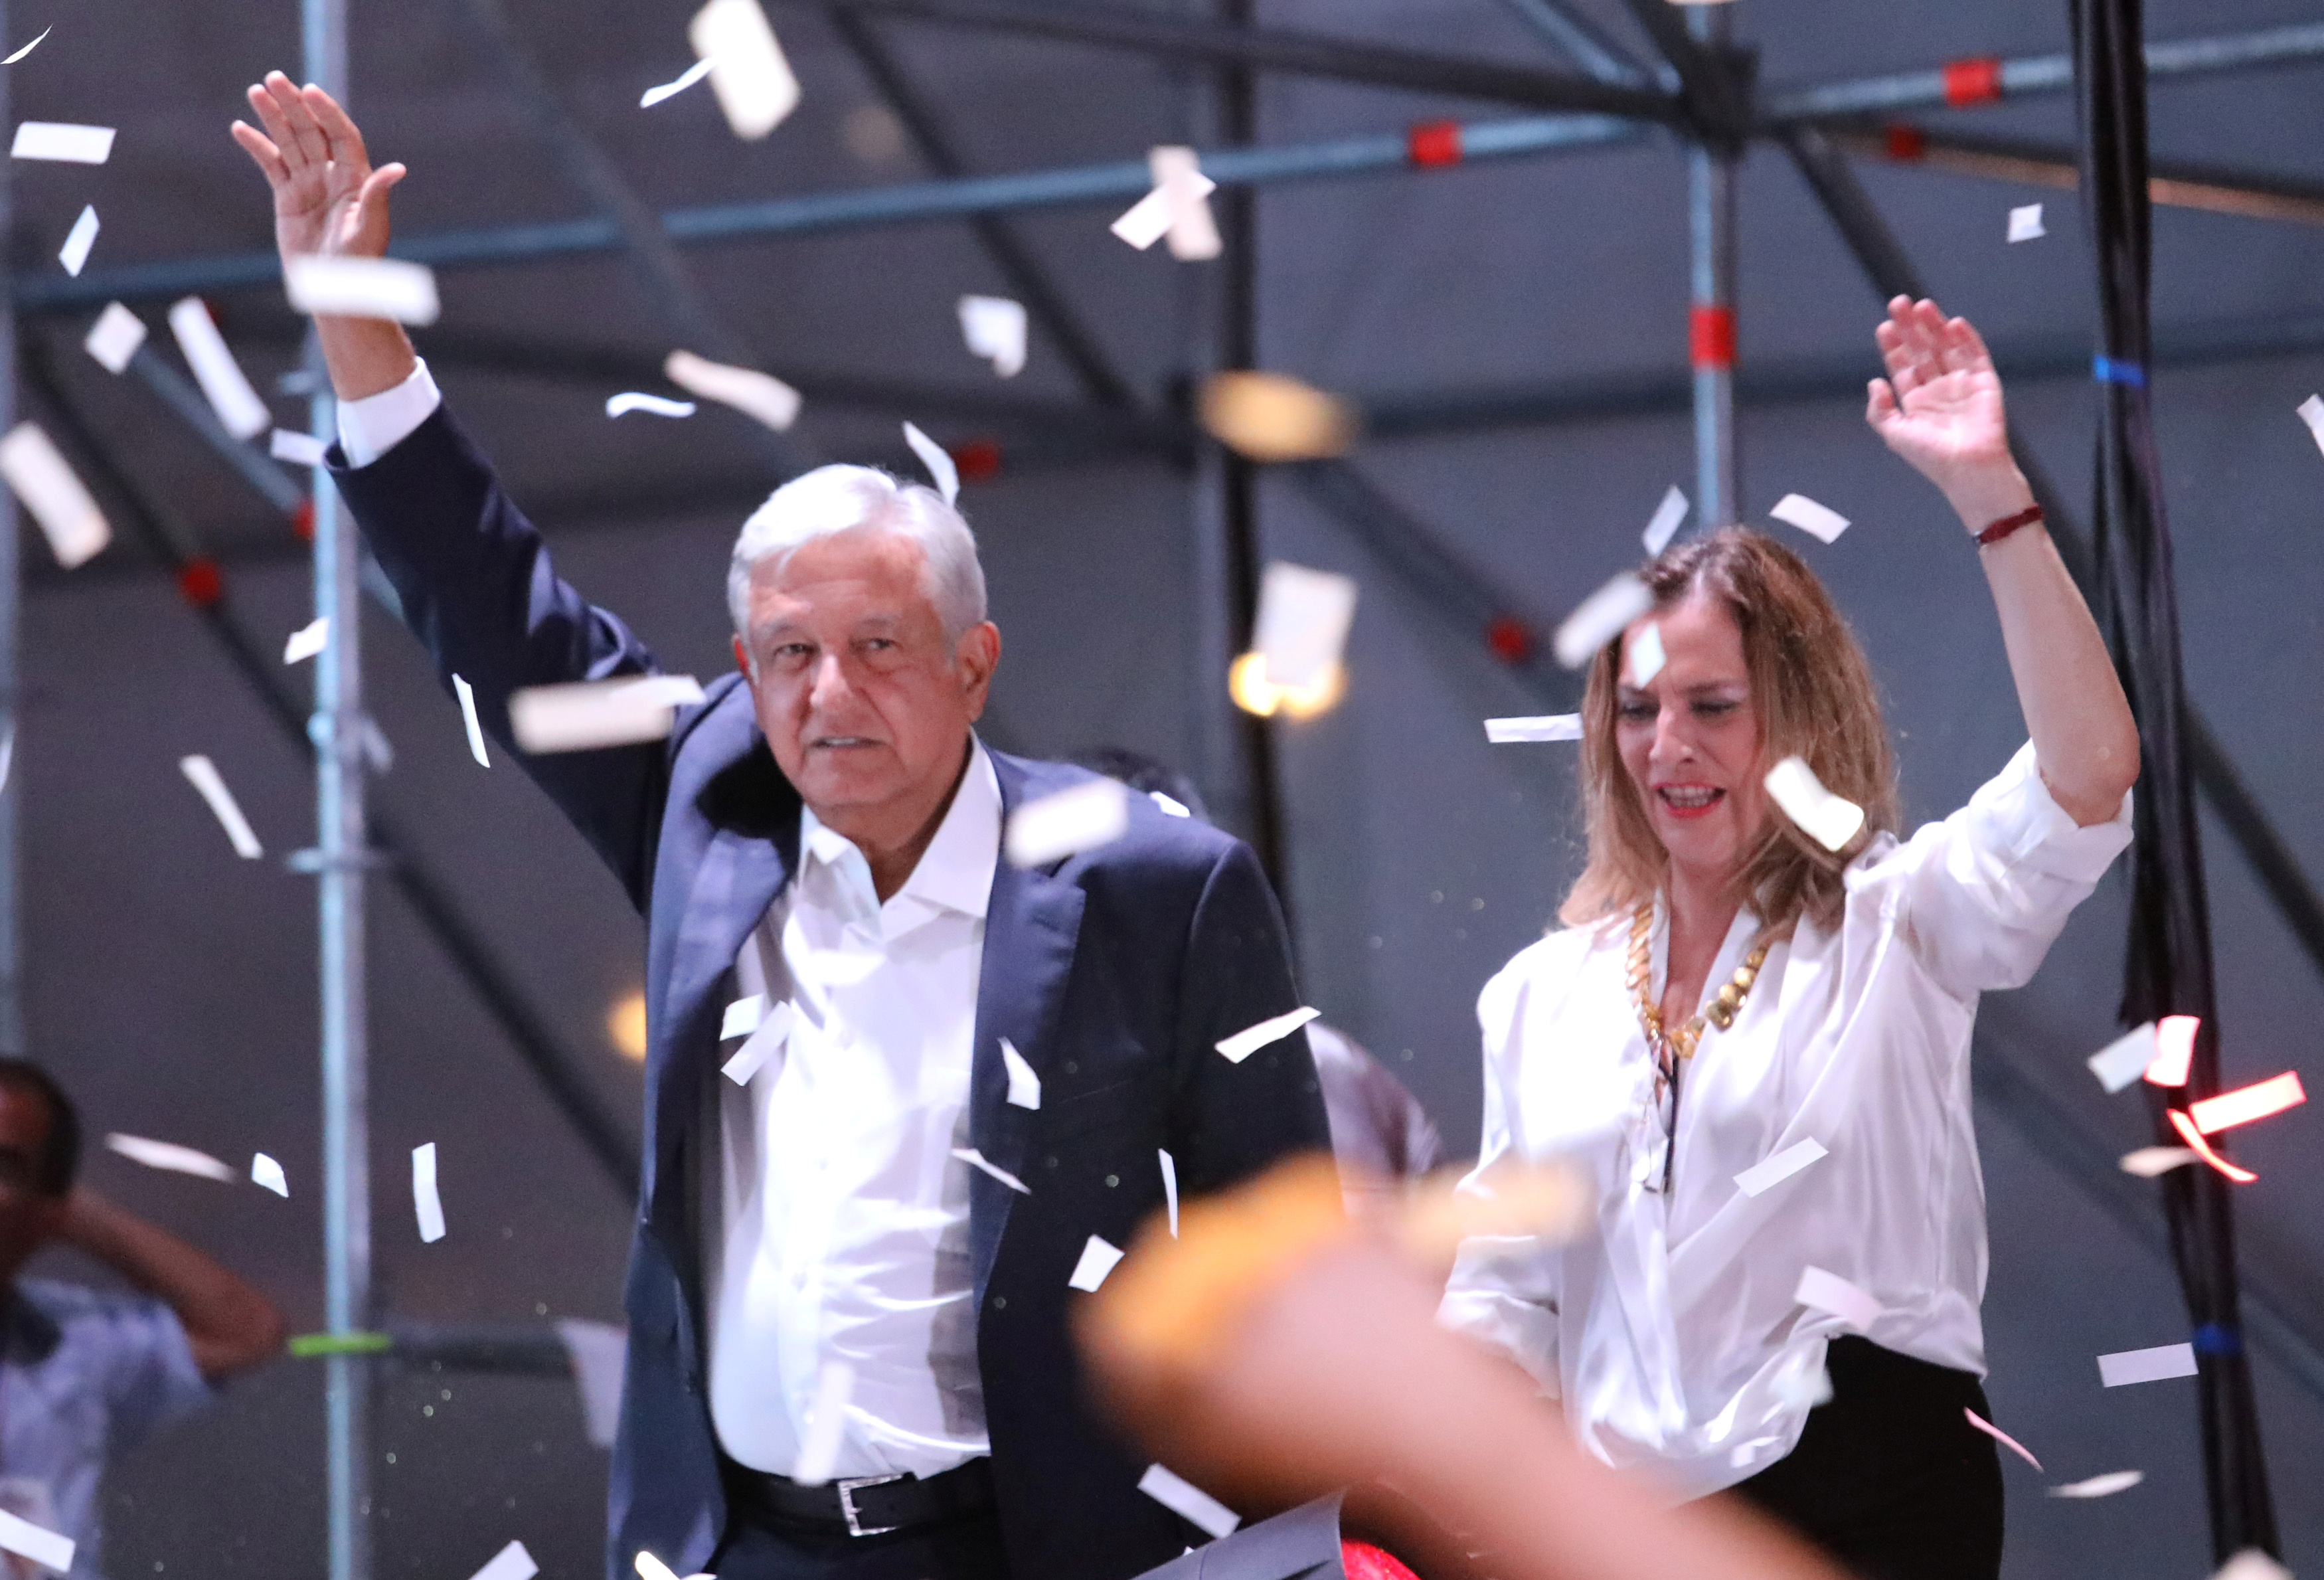 Presidential candidate Andres Manuel Lopez Obrador gestures with his wife Beatriz Gutierrez Muller as he addresses supporters in Mexico City, Mexico, July 1, 2018.